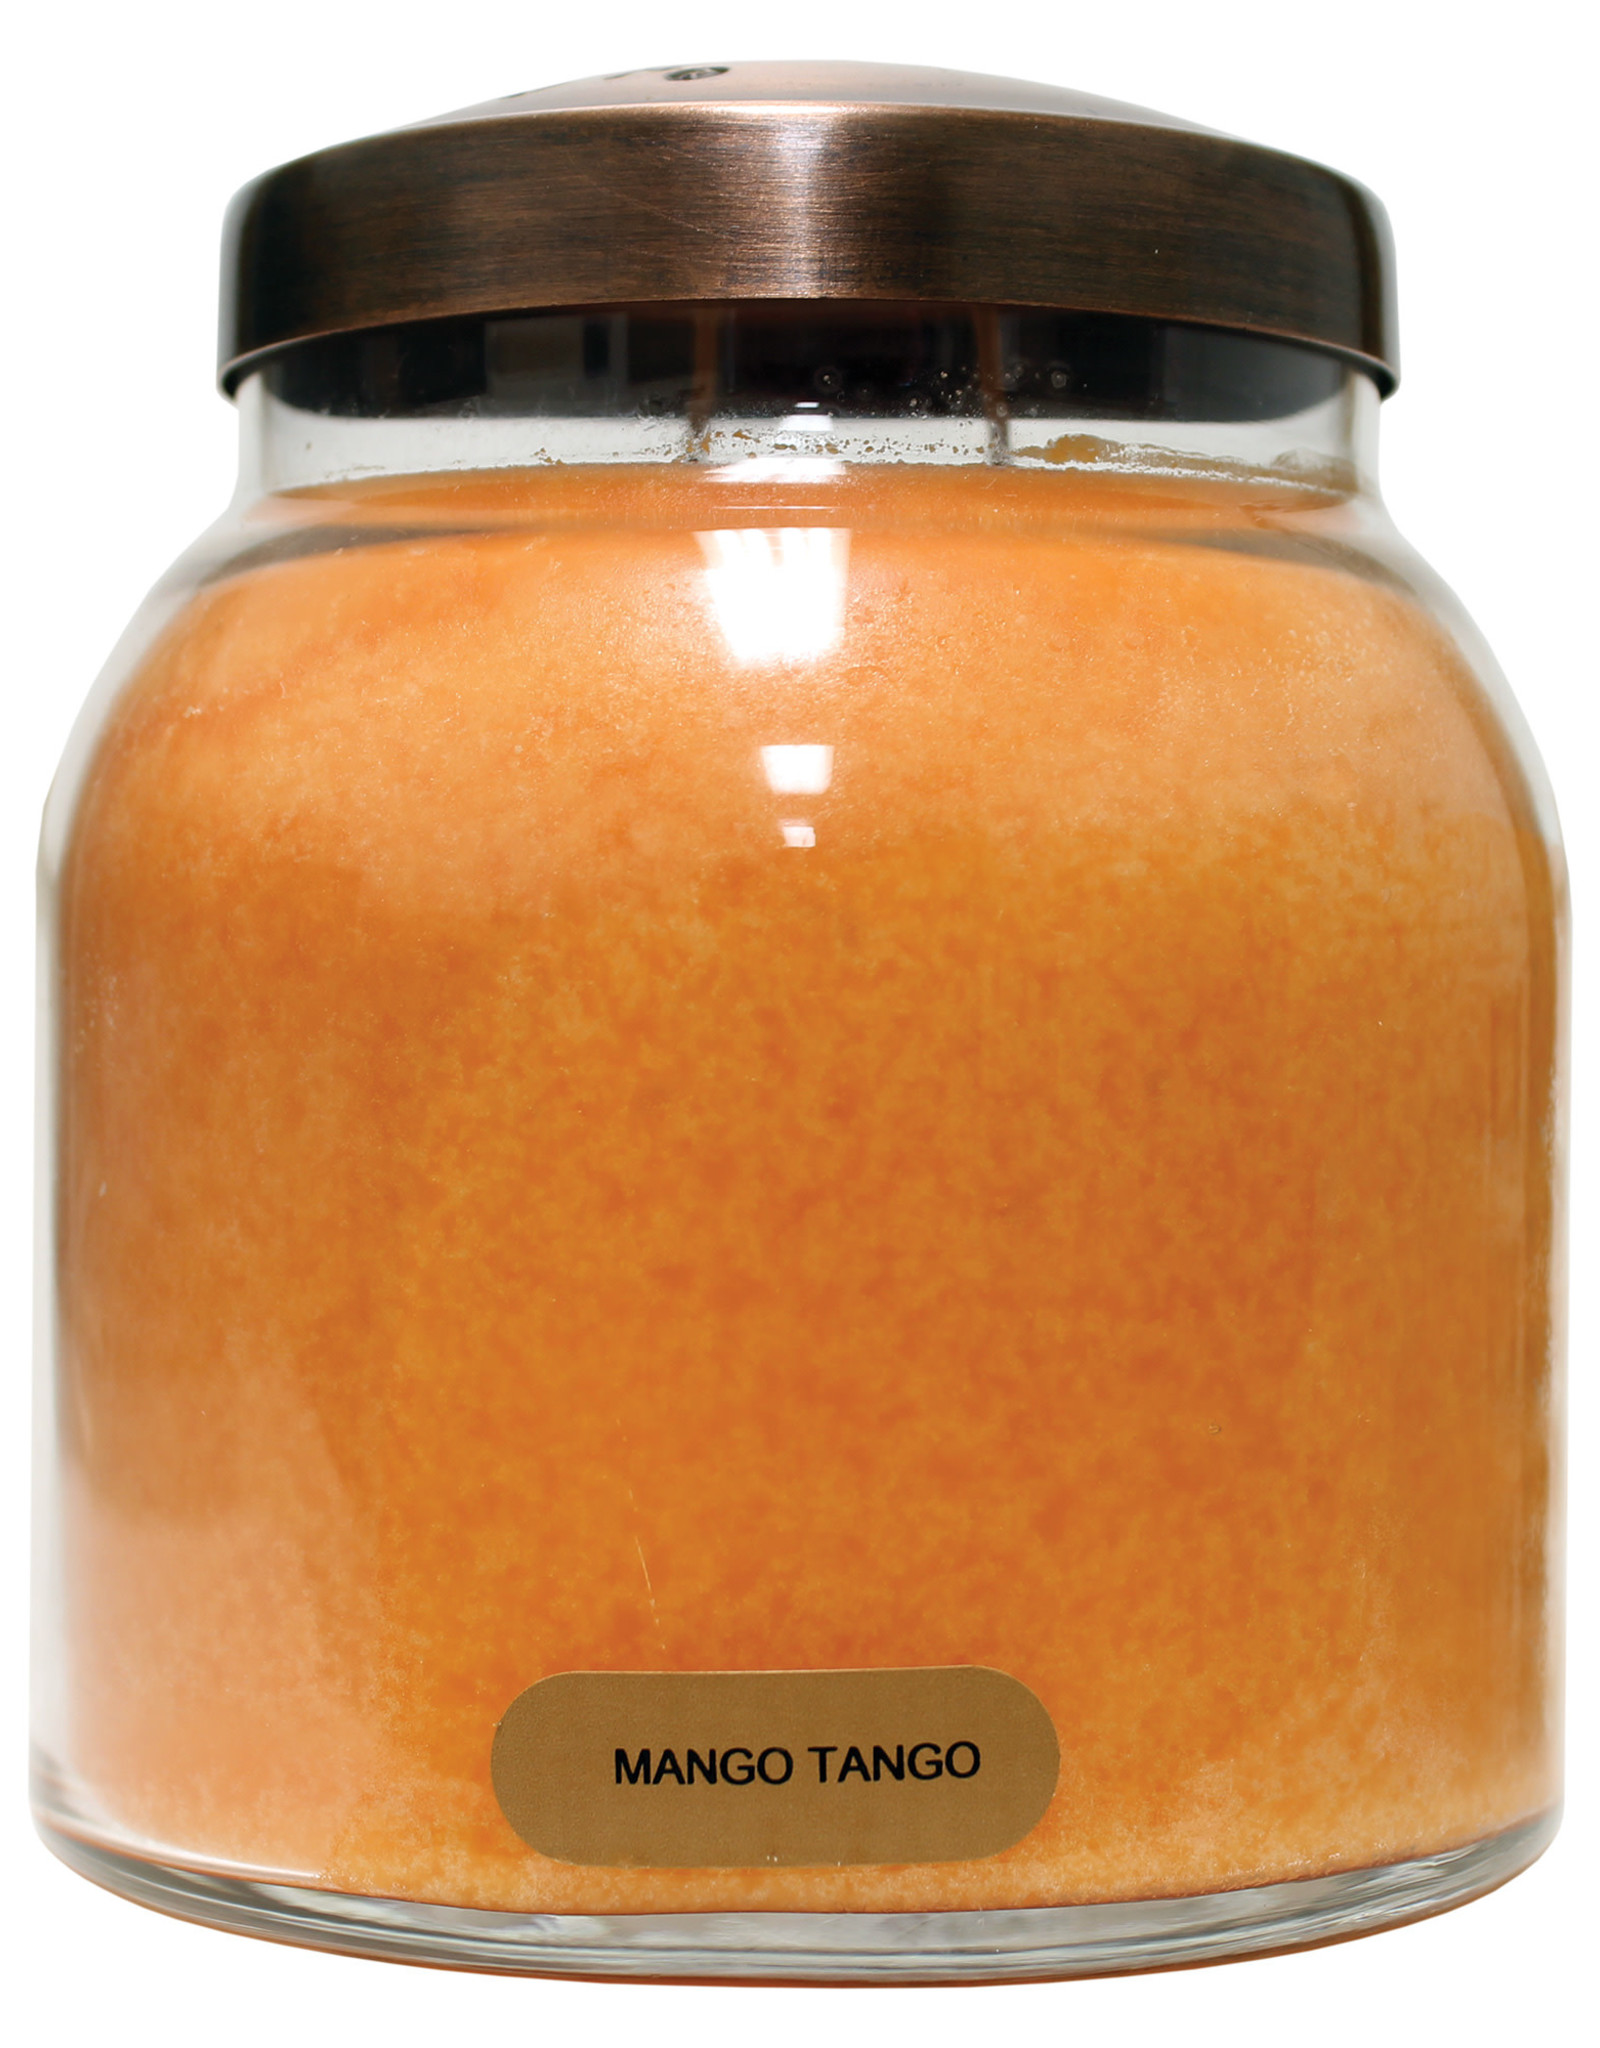 Keepers of the Light Candle - Mango Tango - Papa 34 oz - Copper Lid